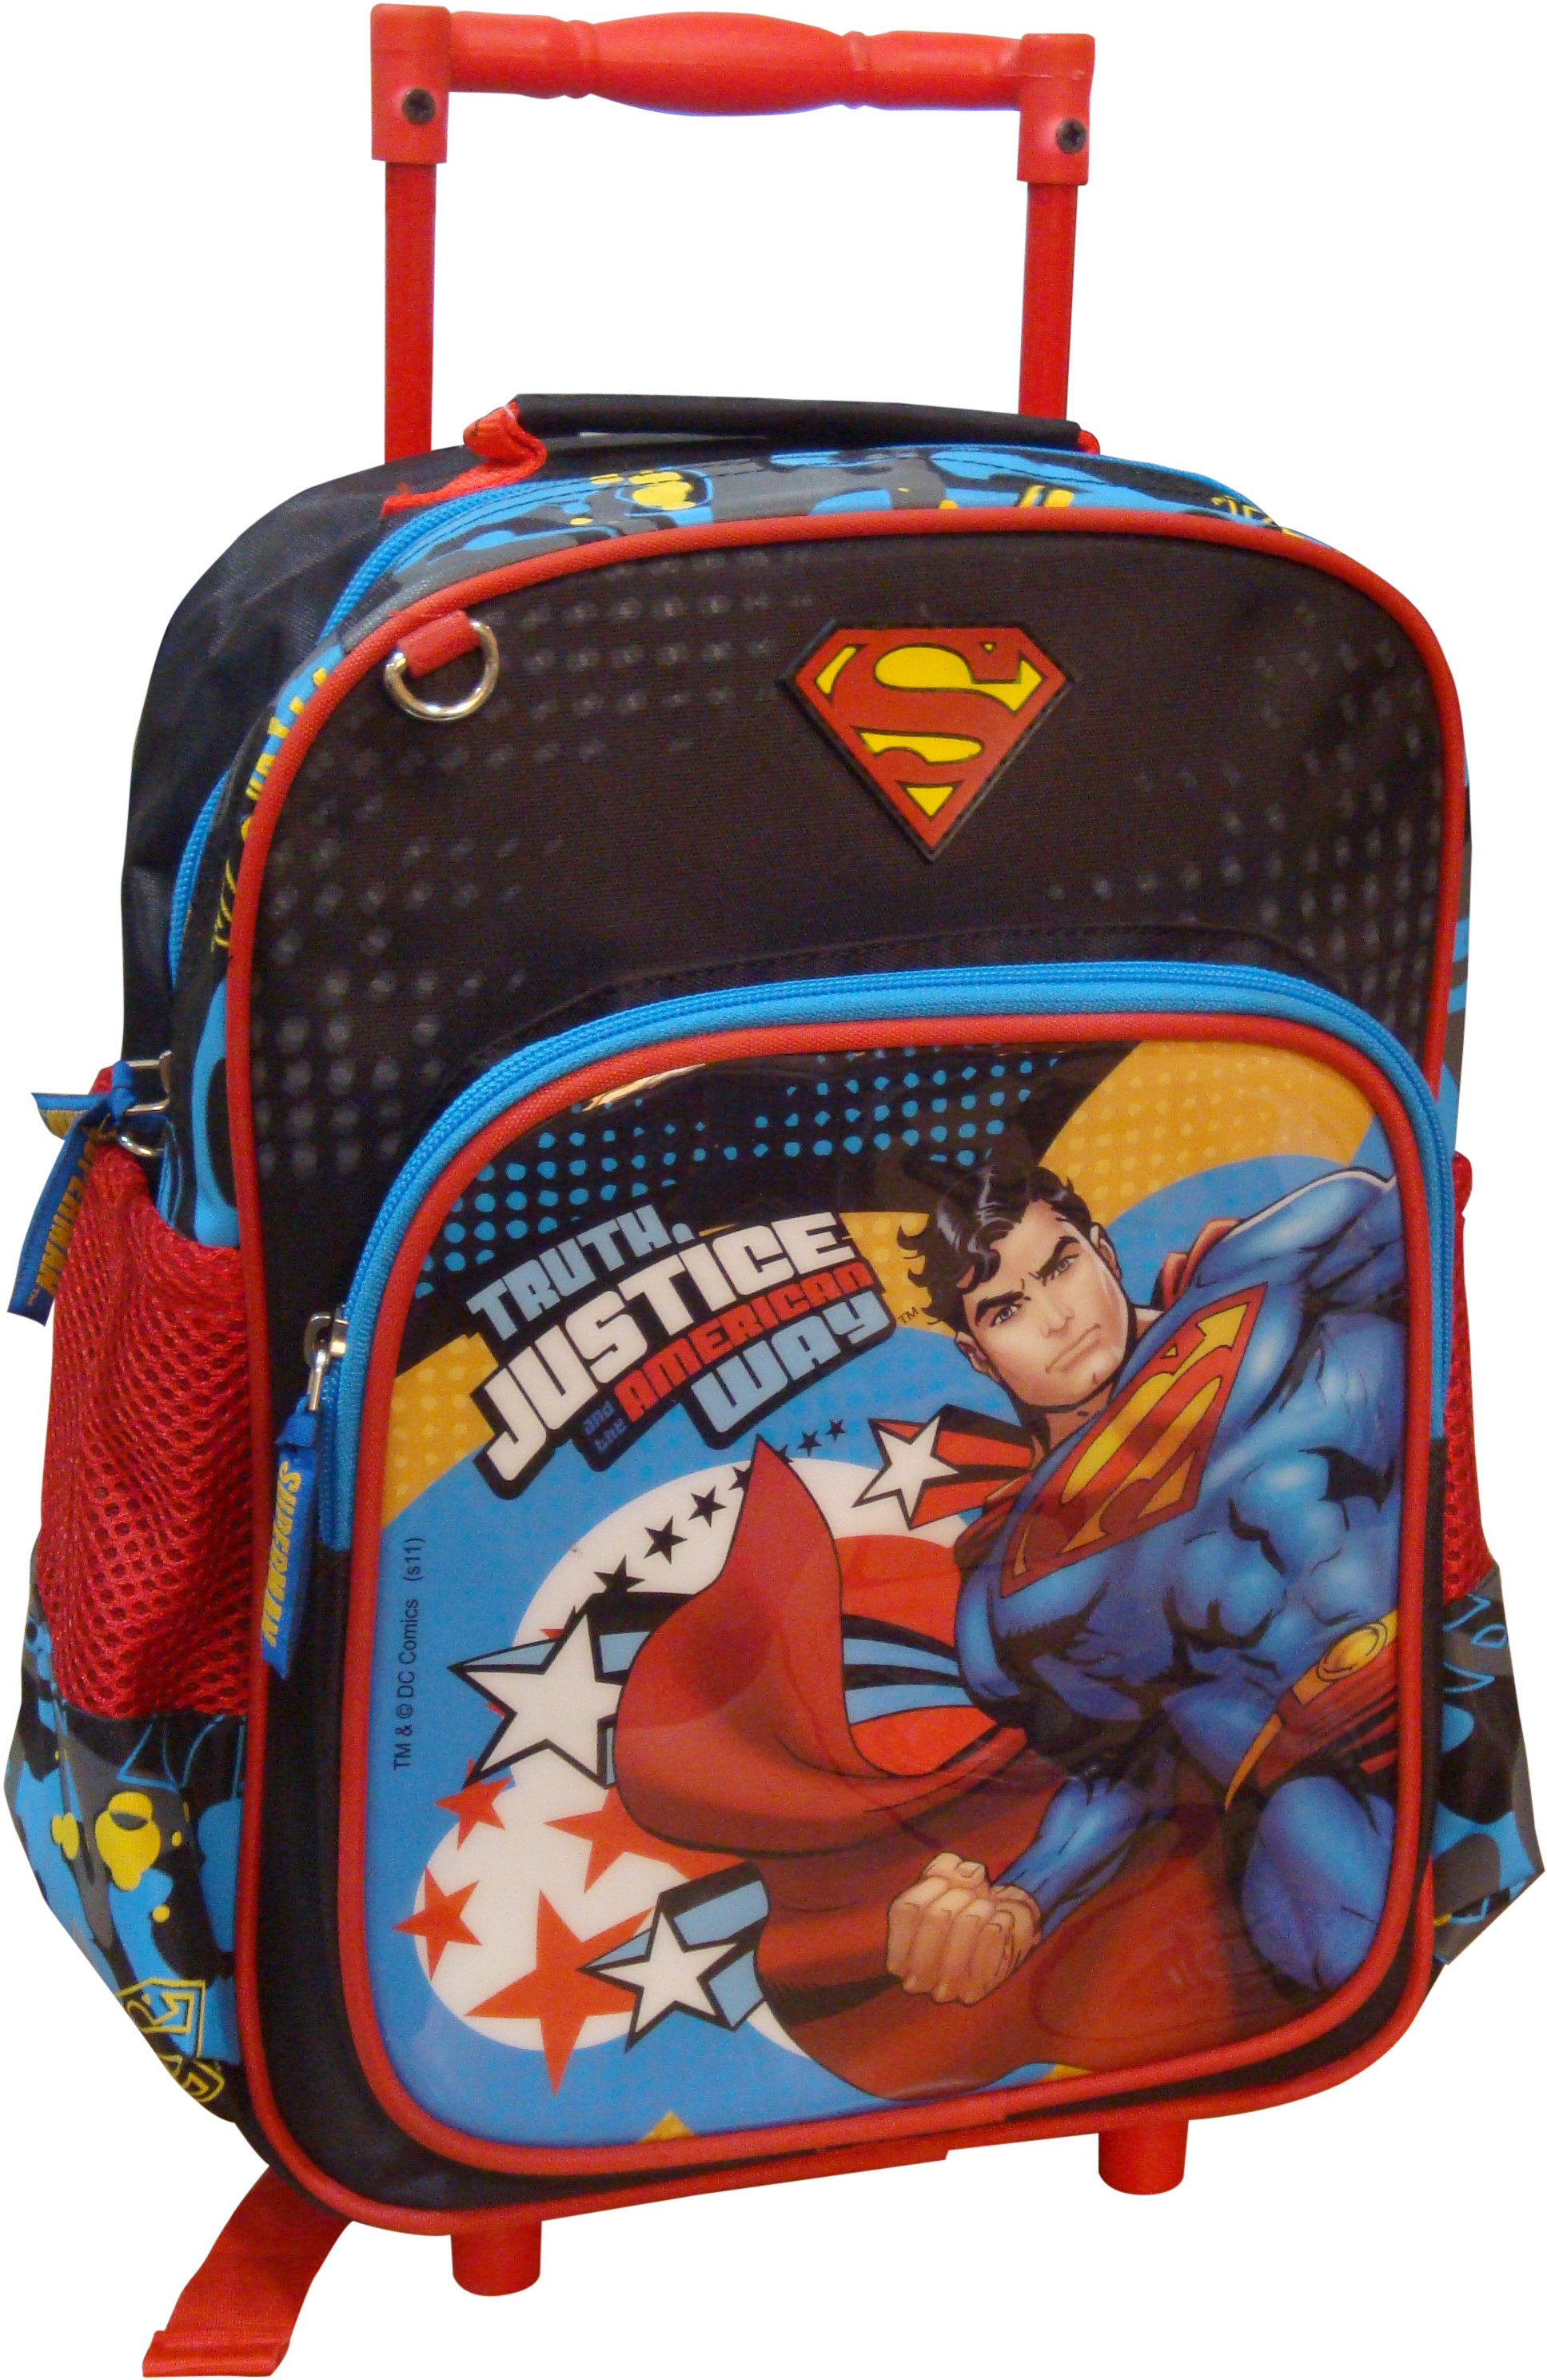 cf948383c2 ... STARX SUPERMAN SCHOOL BAG WATERPROOF BACKPACK RED BLACK